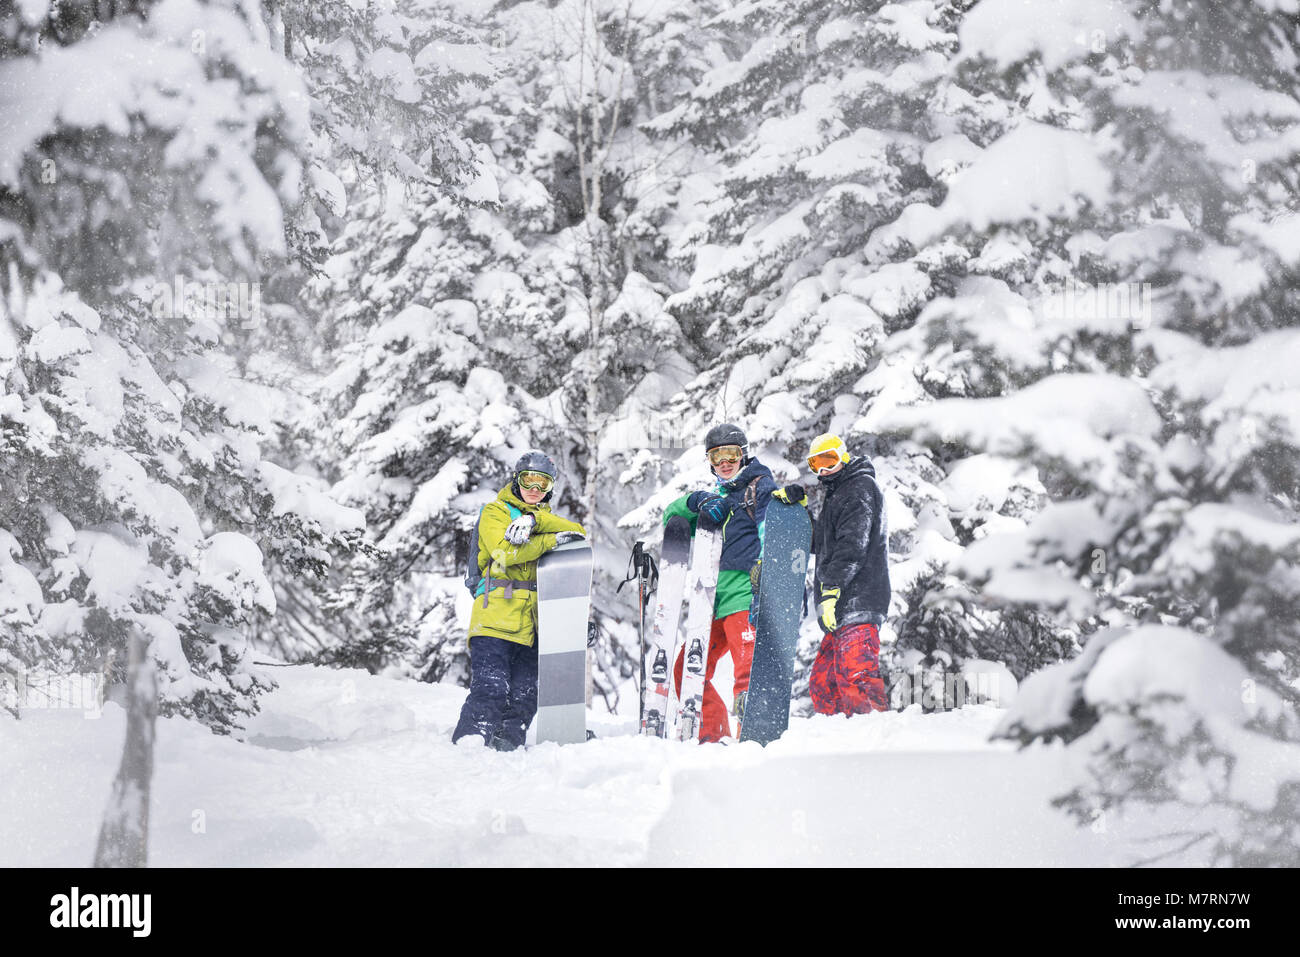 Group of skiers and snowboarders are choosing offpiste track through forest slope. Ski resort concept - Stock Image